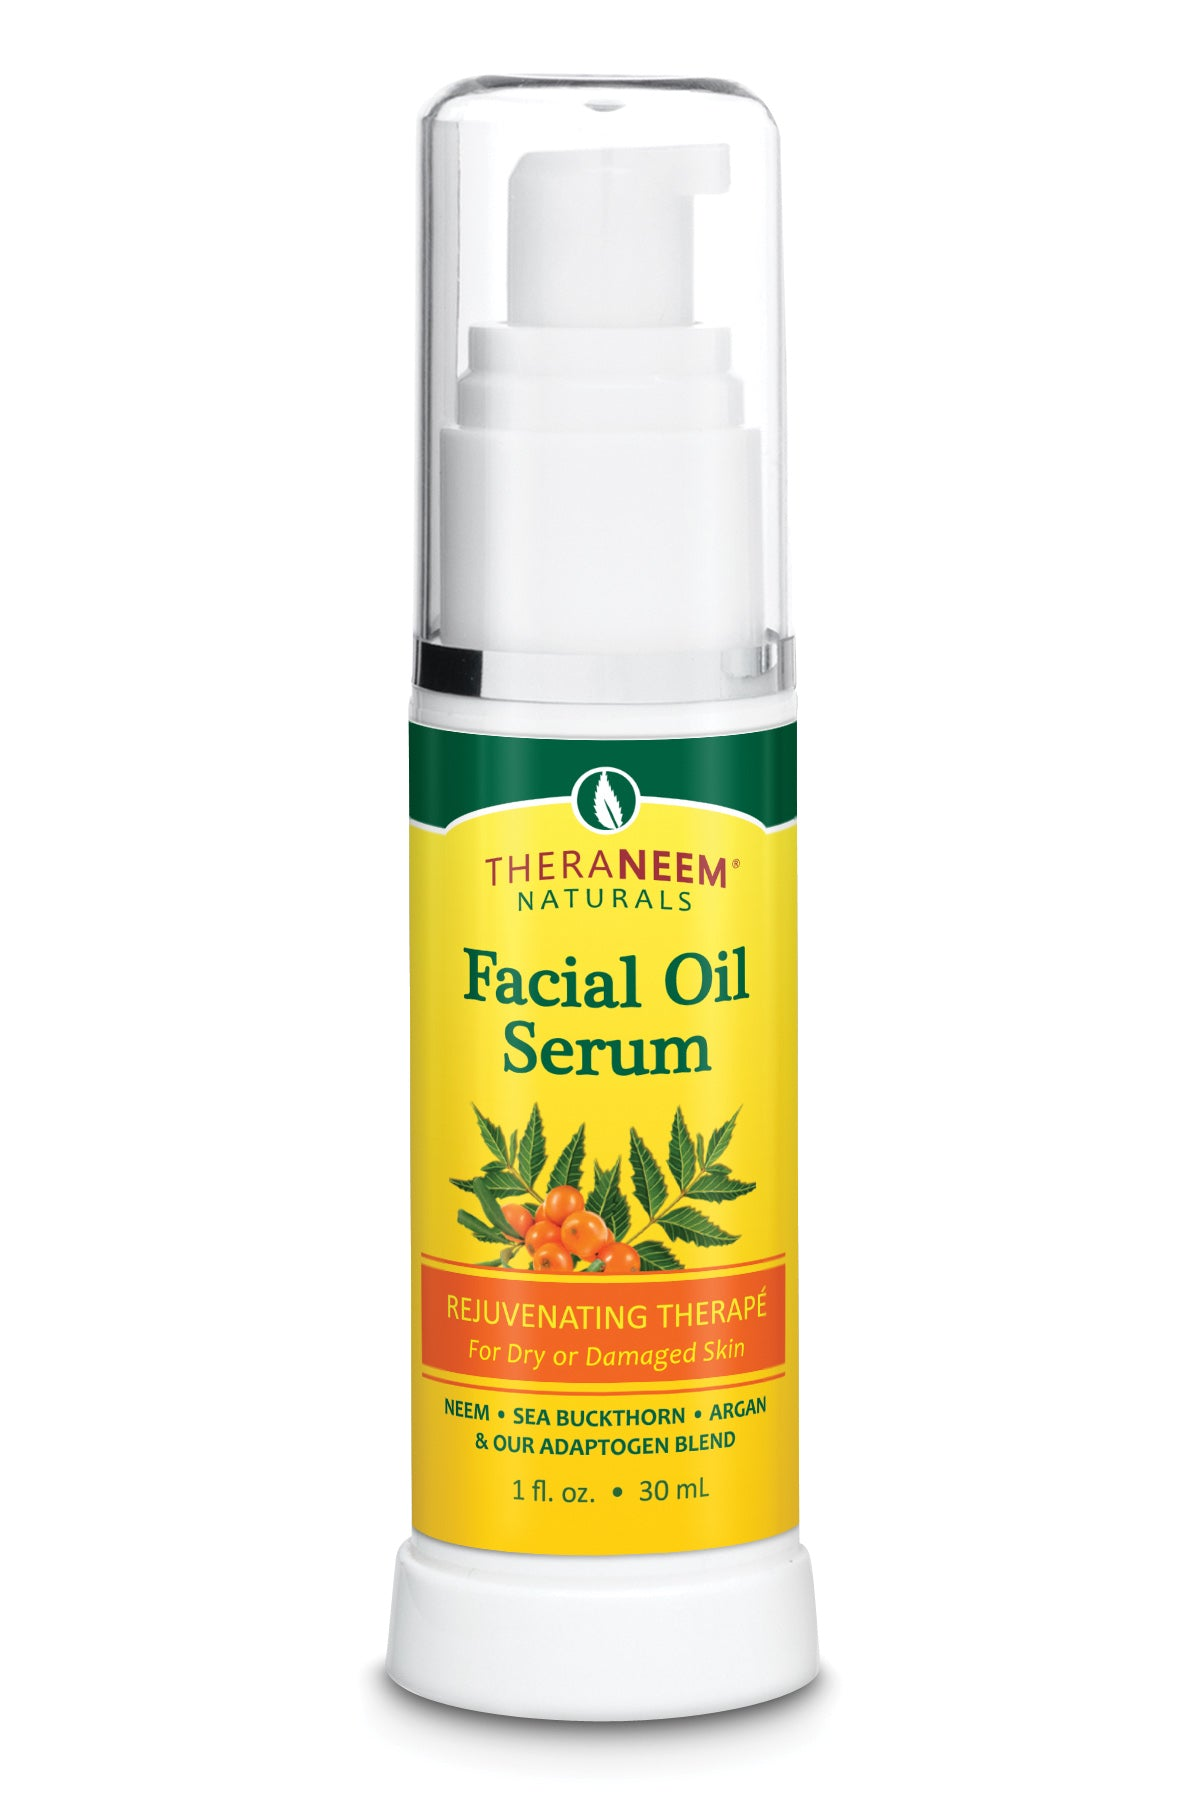 Facial Oil For Dry Or Damaged Skin - Rejuvenating Therape